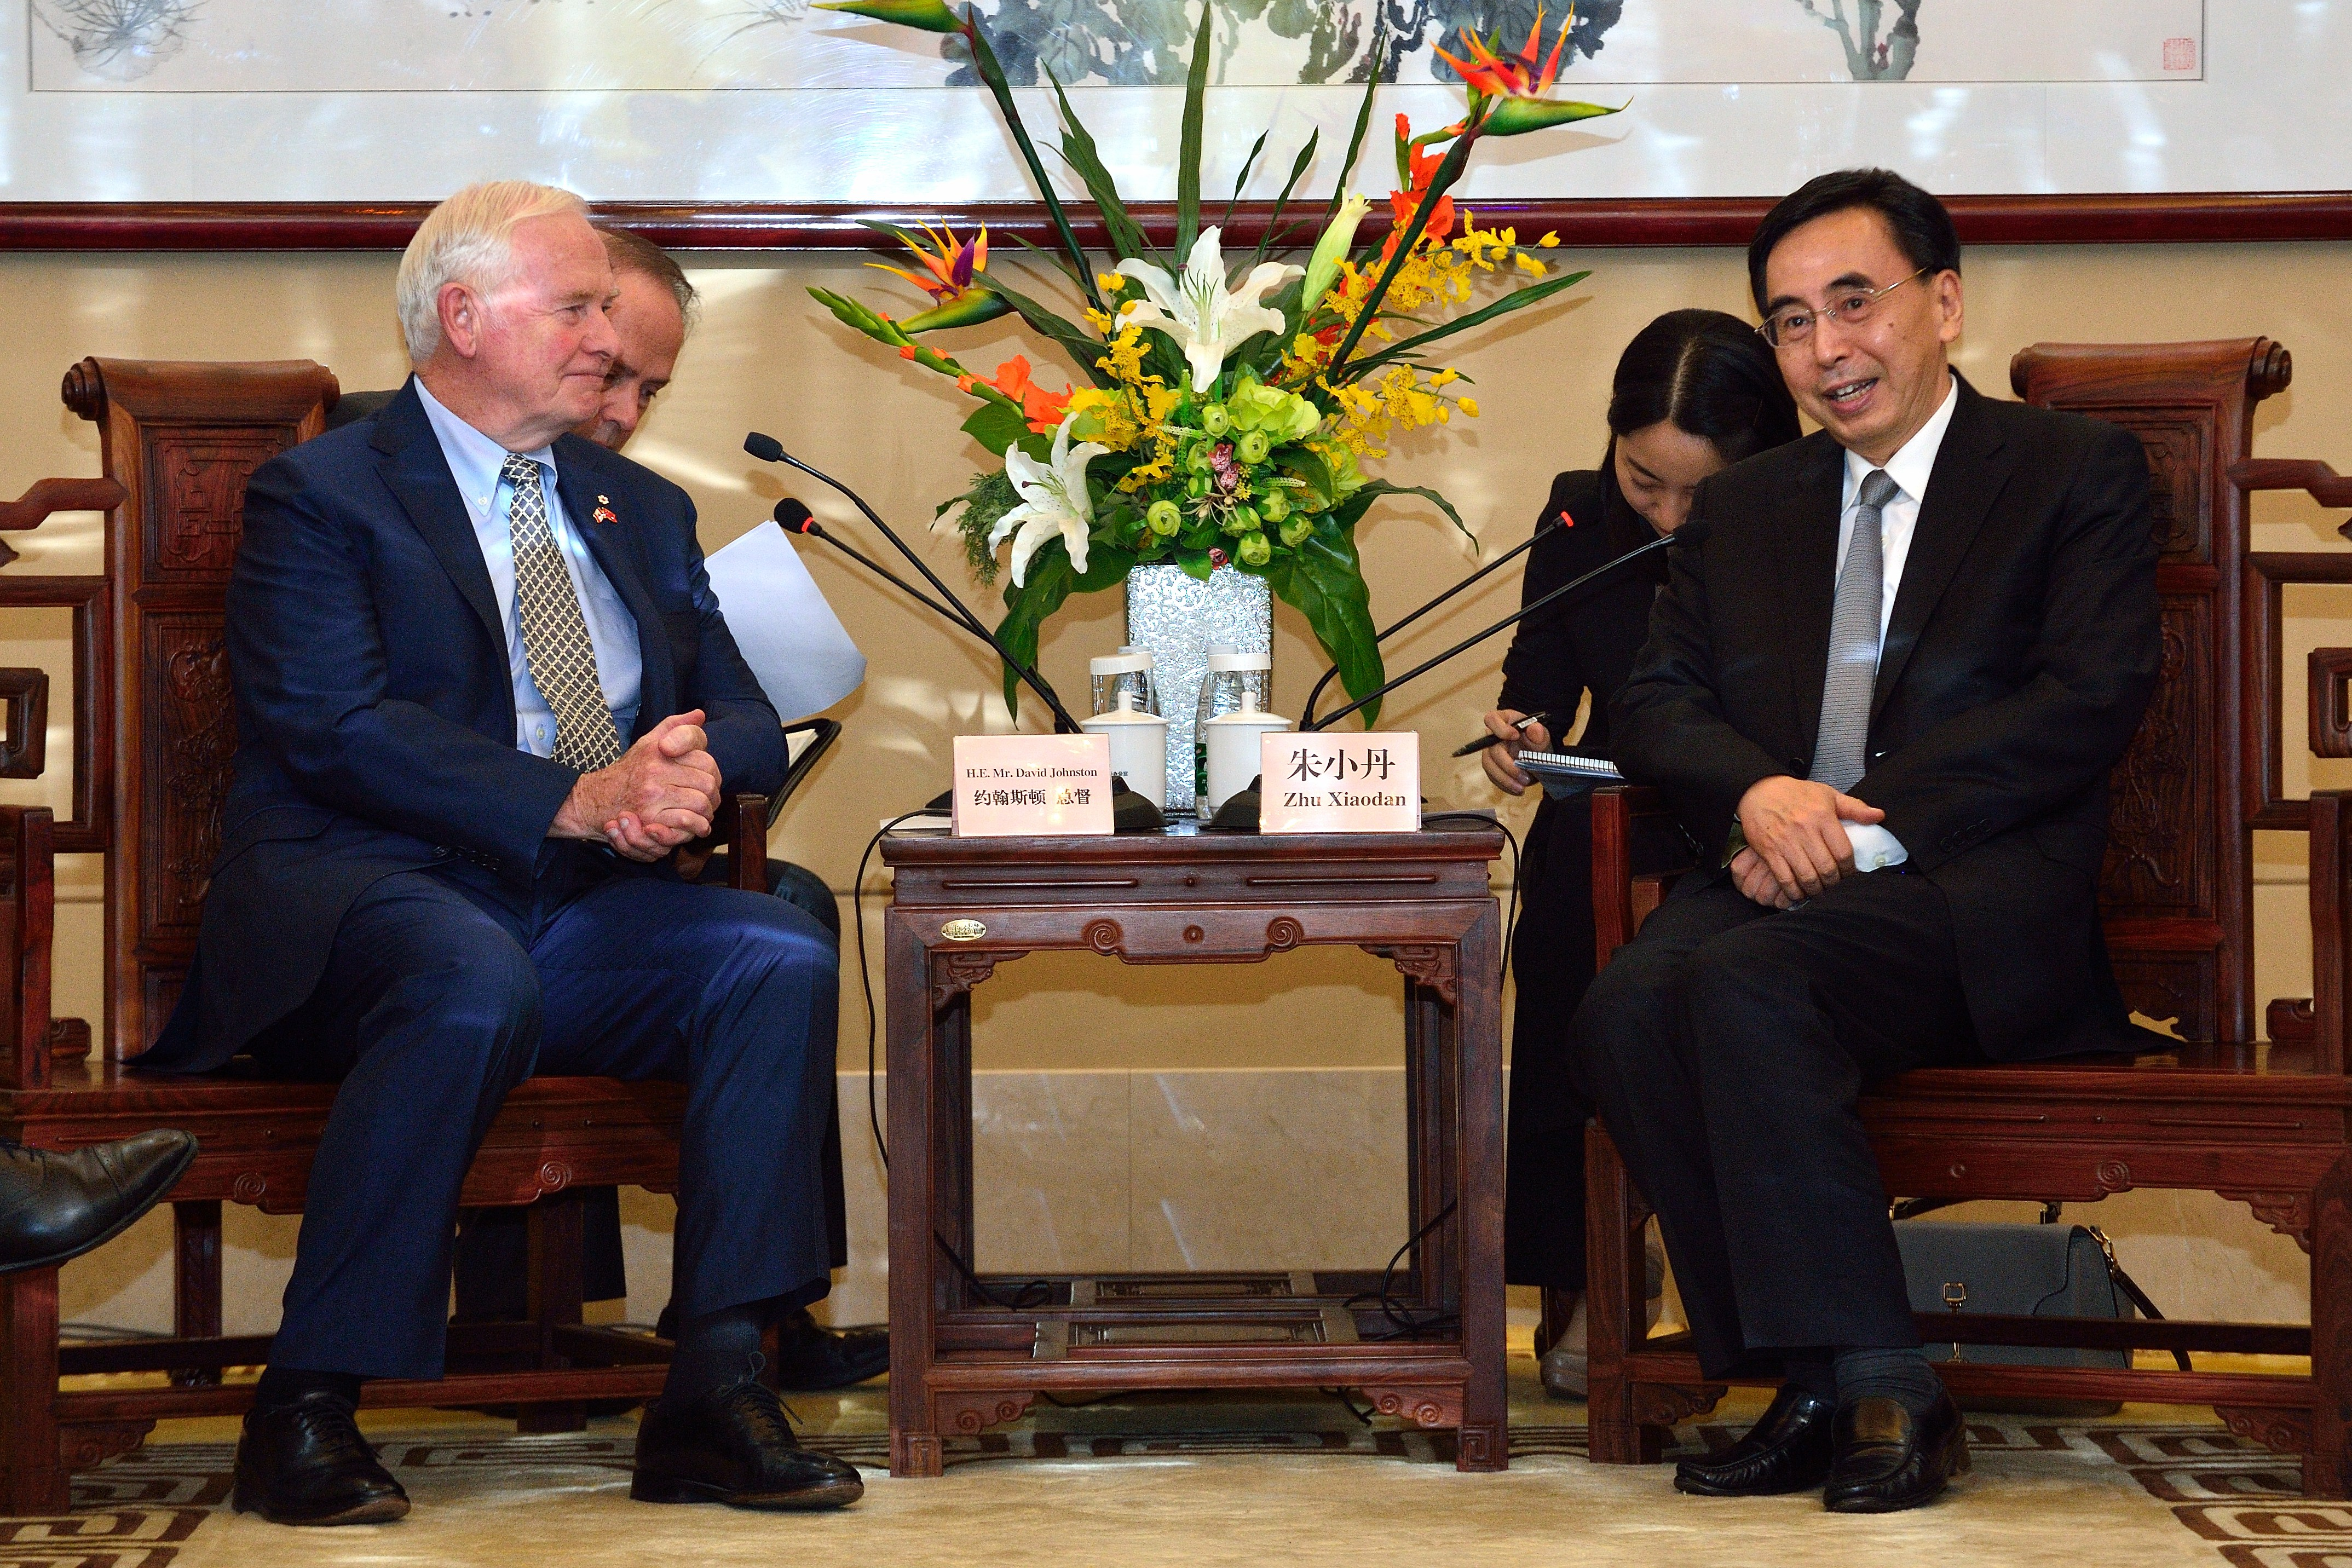 Prior to attending the opening of the Barkerville photo exhibit at the Guangdong Museum of Chinese Nationals Residing Abroad, the Governor General met with His Excellency Zhu Xiao Dan, Governor of Guangdong Province.